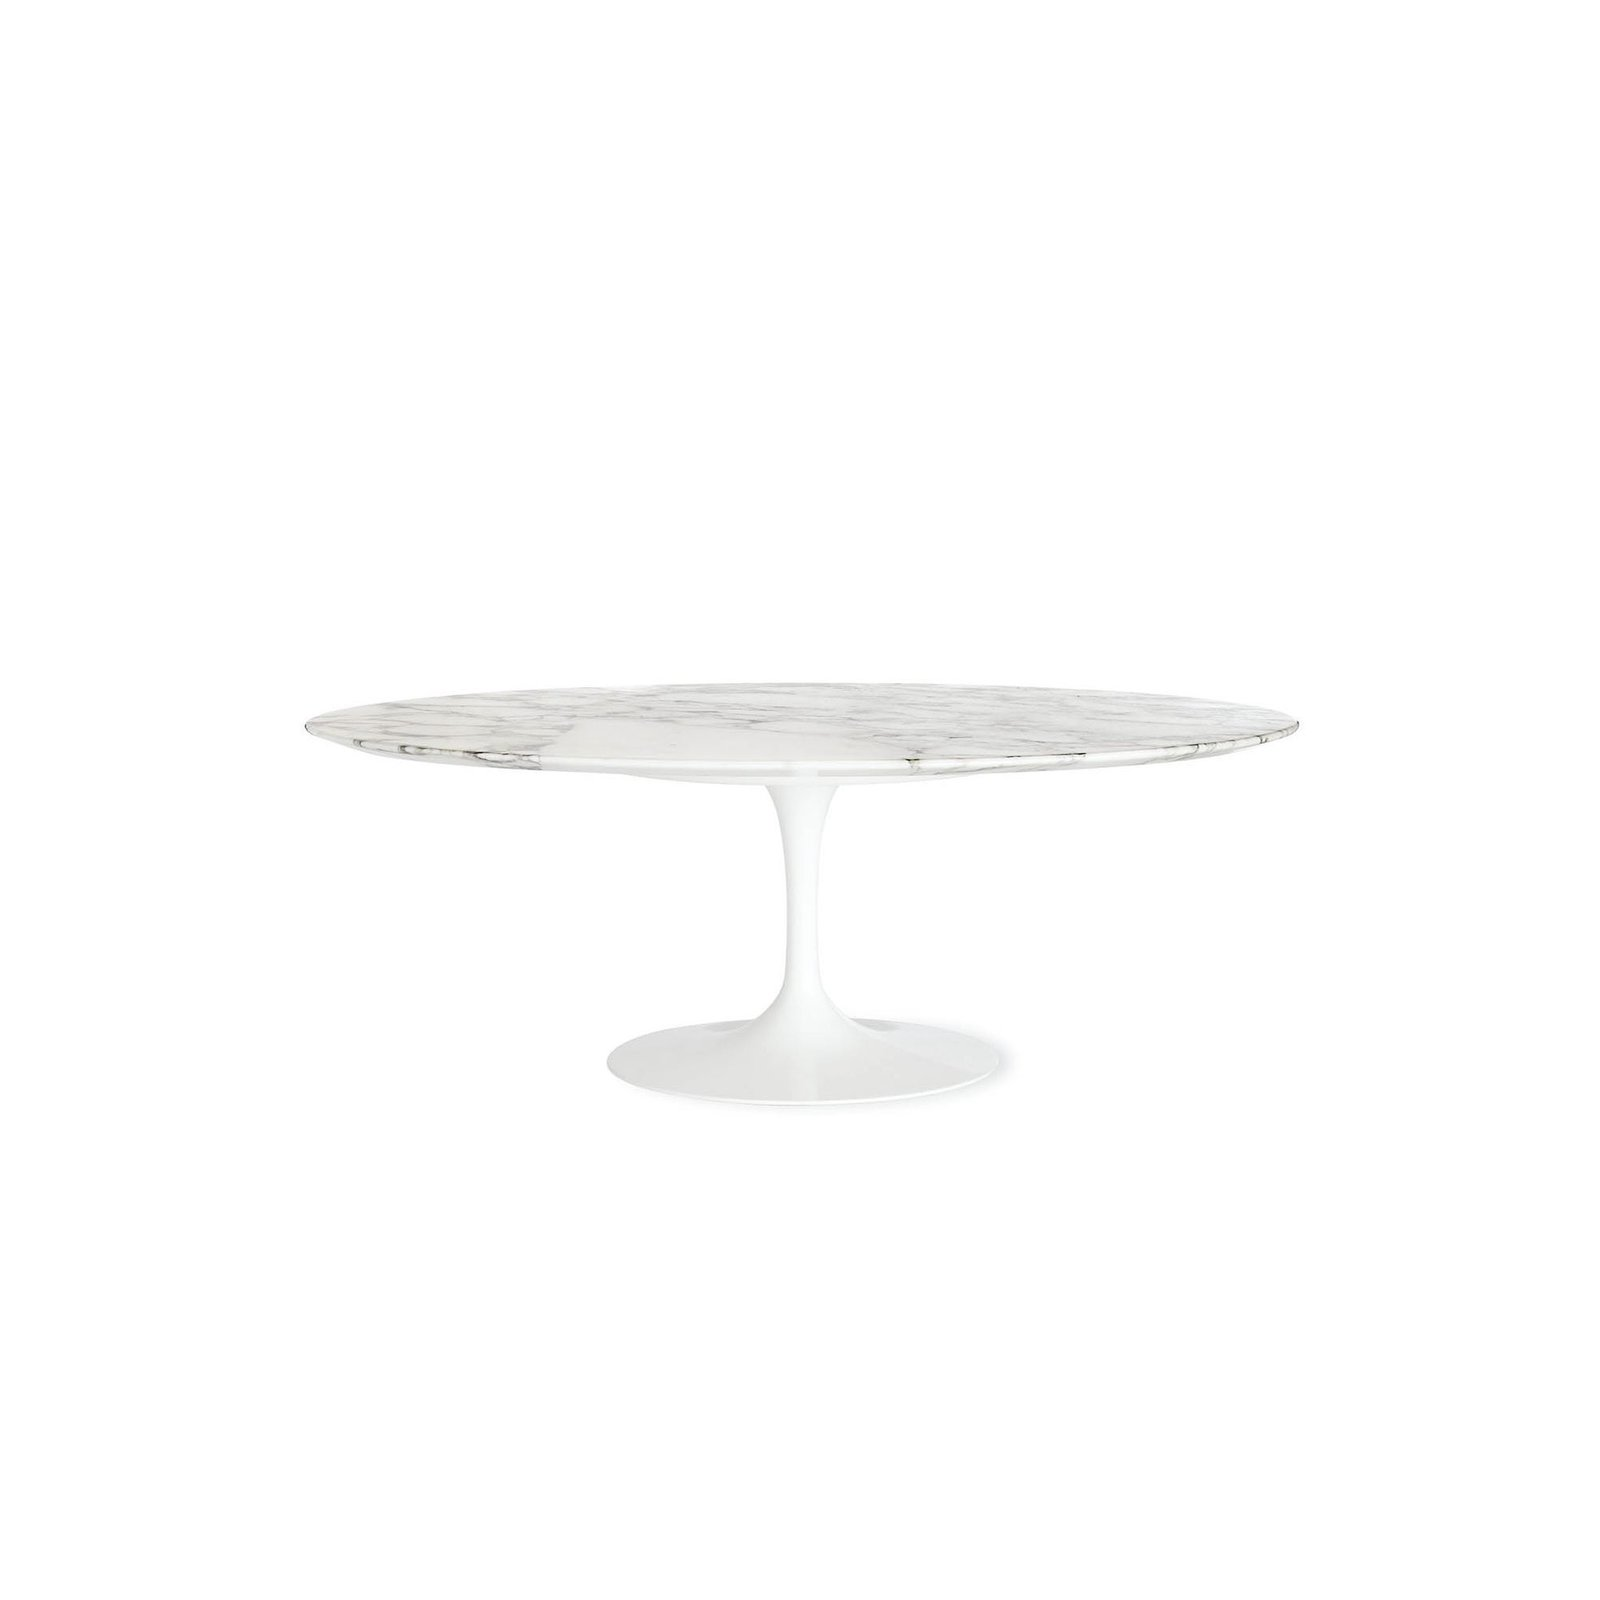 Saarinen Low Oval Coffee Table By Design Within Reach Dwell - Saarinen low oval coffee table